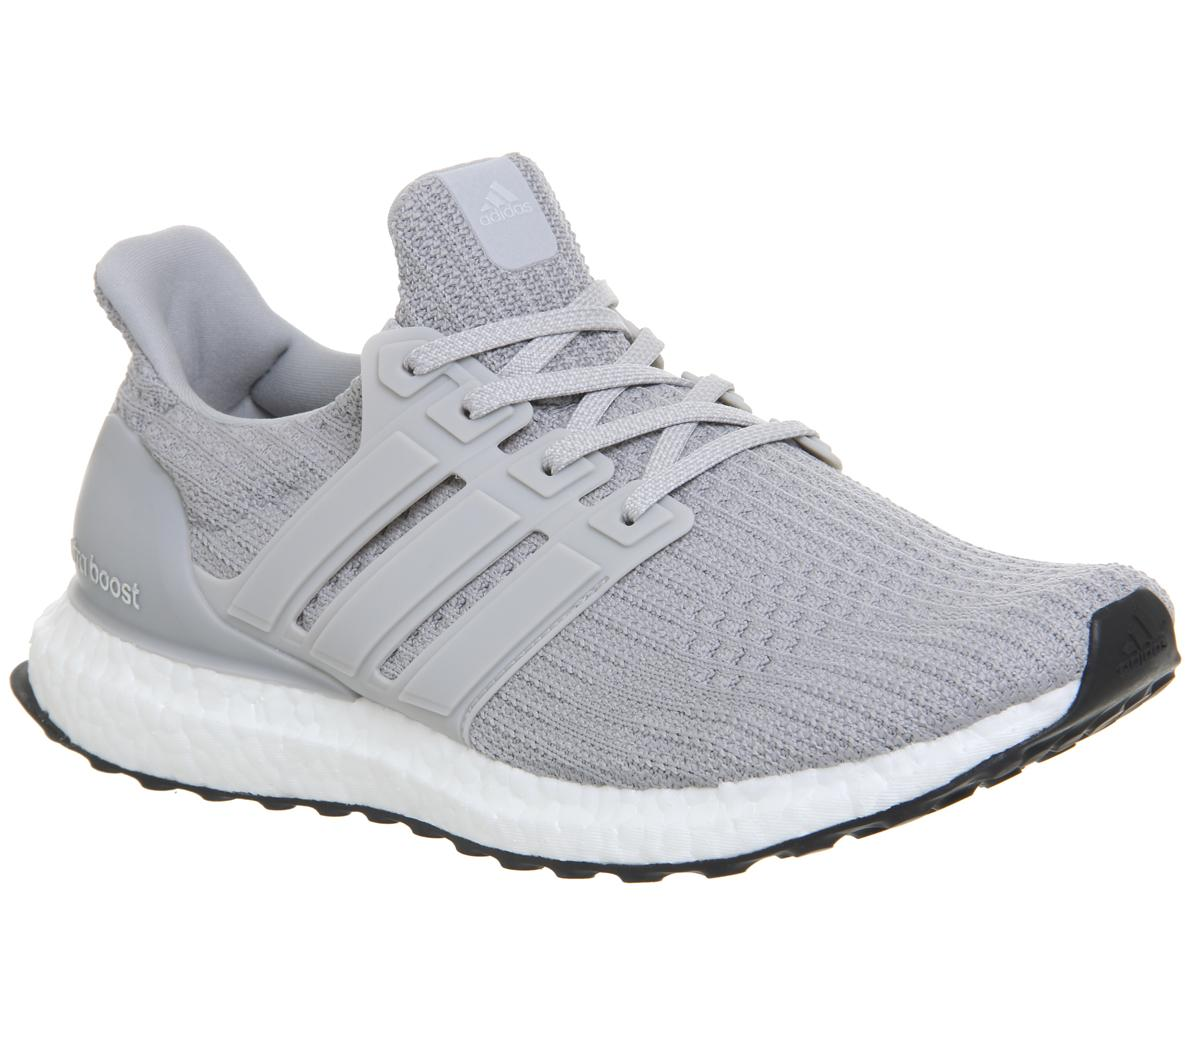 9d28d1bf47704 adidas Ultraboost Ultra Boost Trainers Grey Grey Core Black - His ...